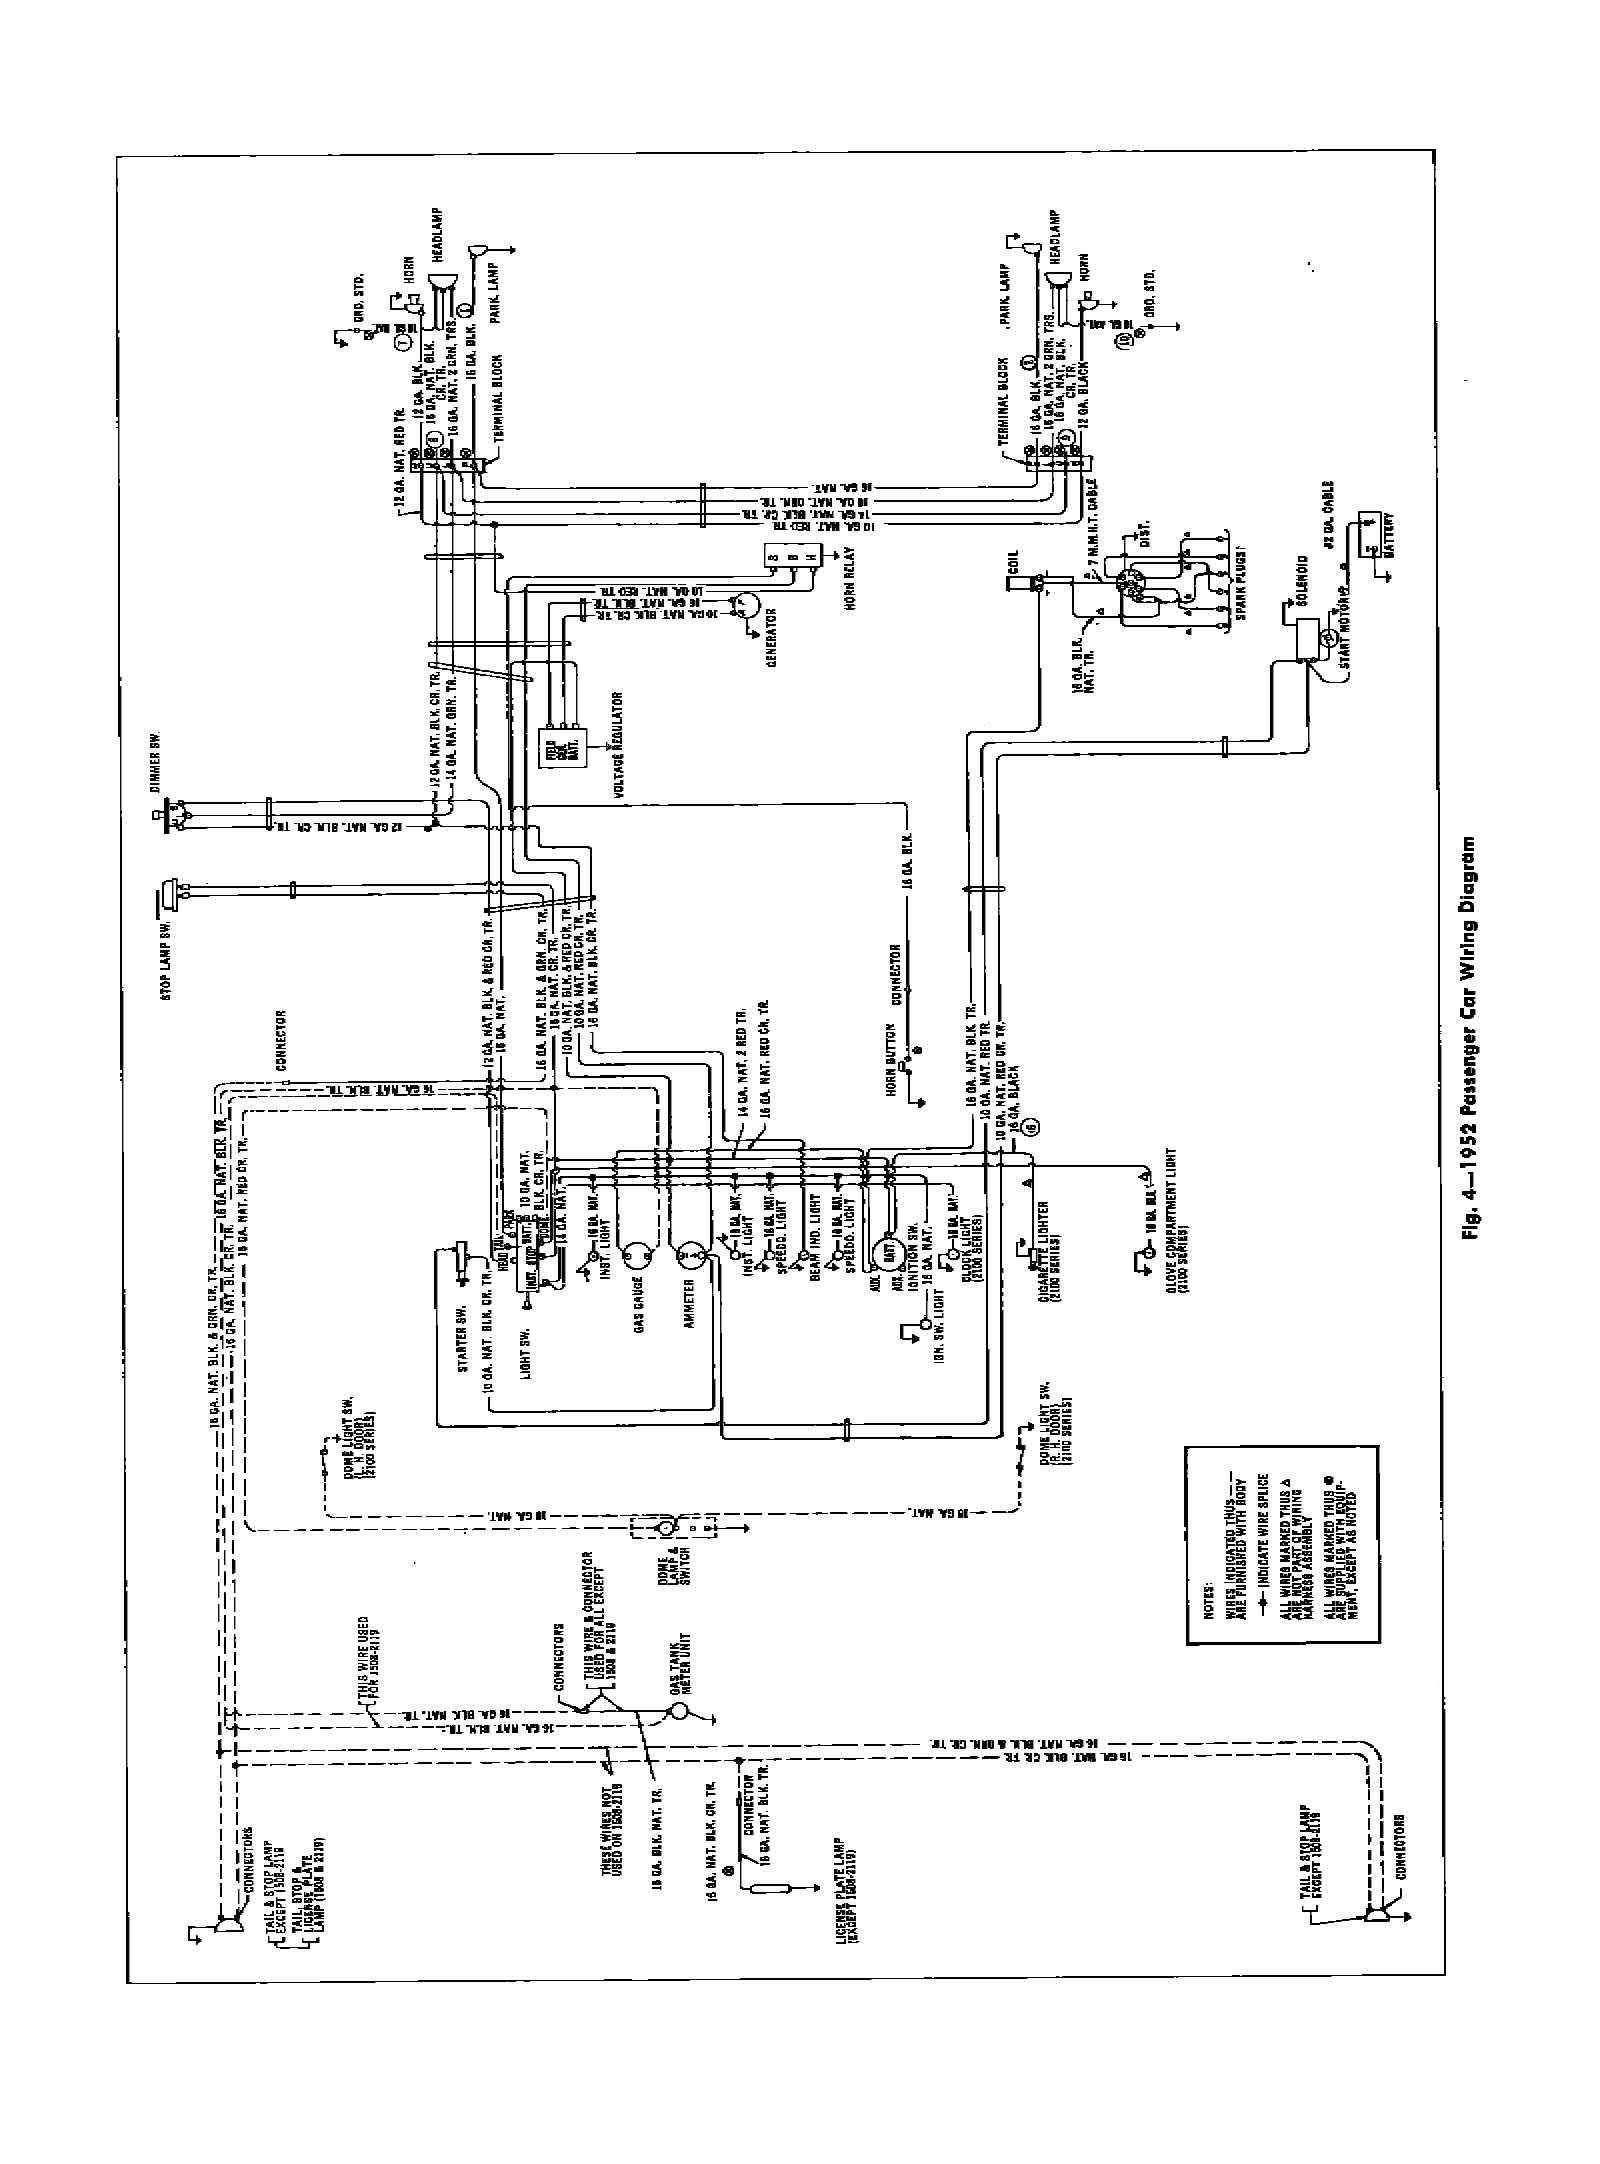 Diagram Willys Jeep Wiring Diagram Full Version Hd